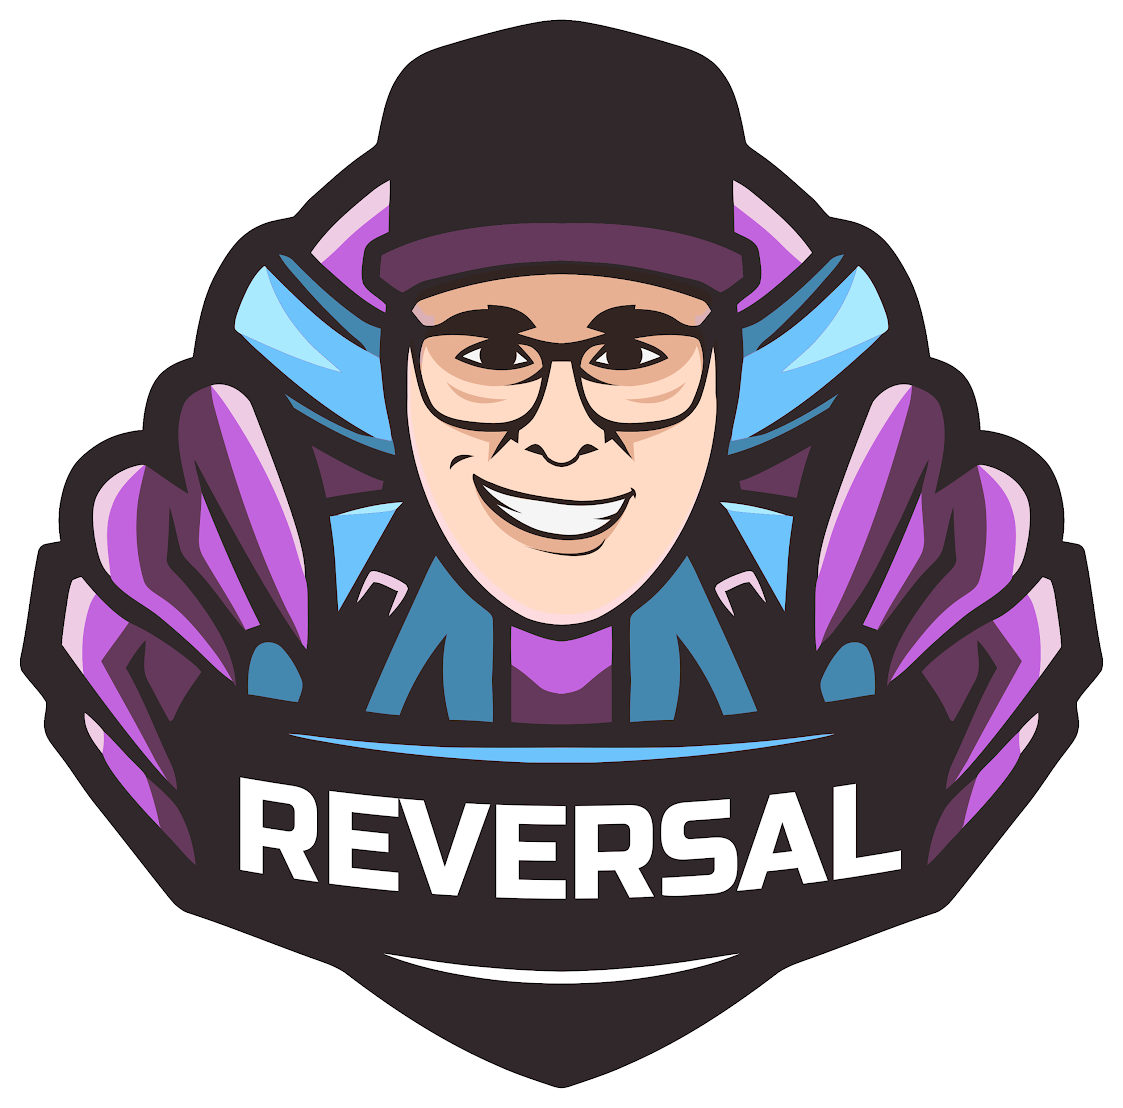 The Reversal Official Store